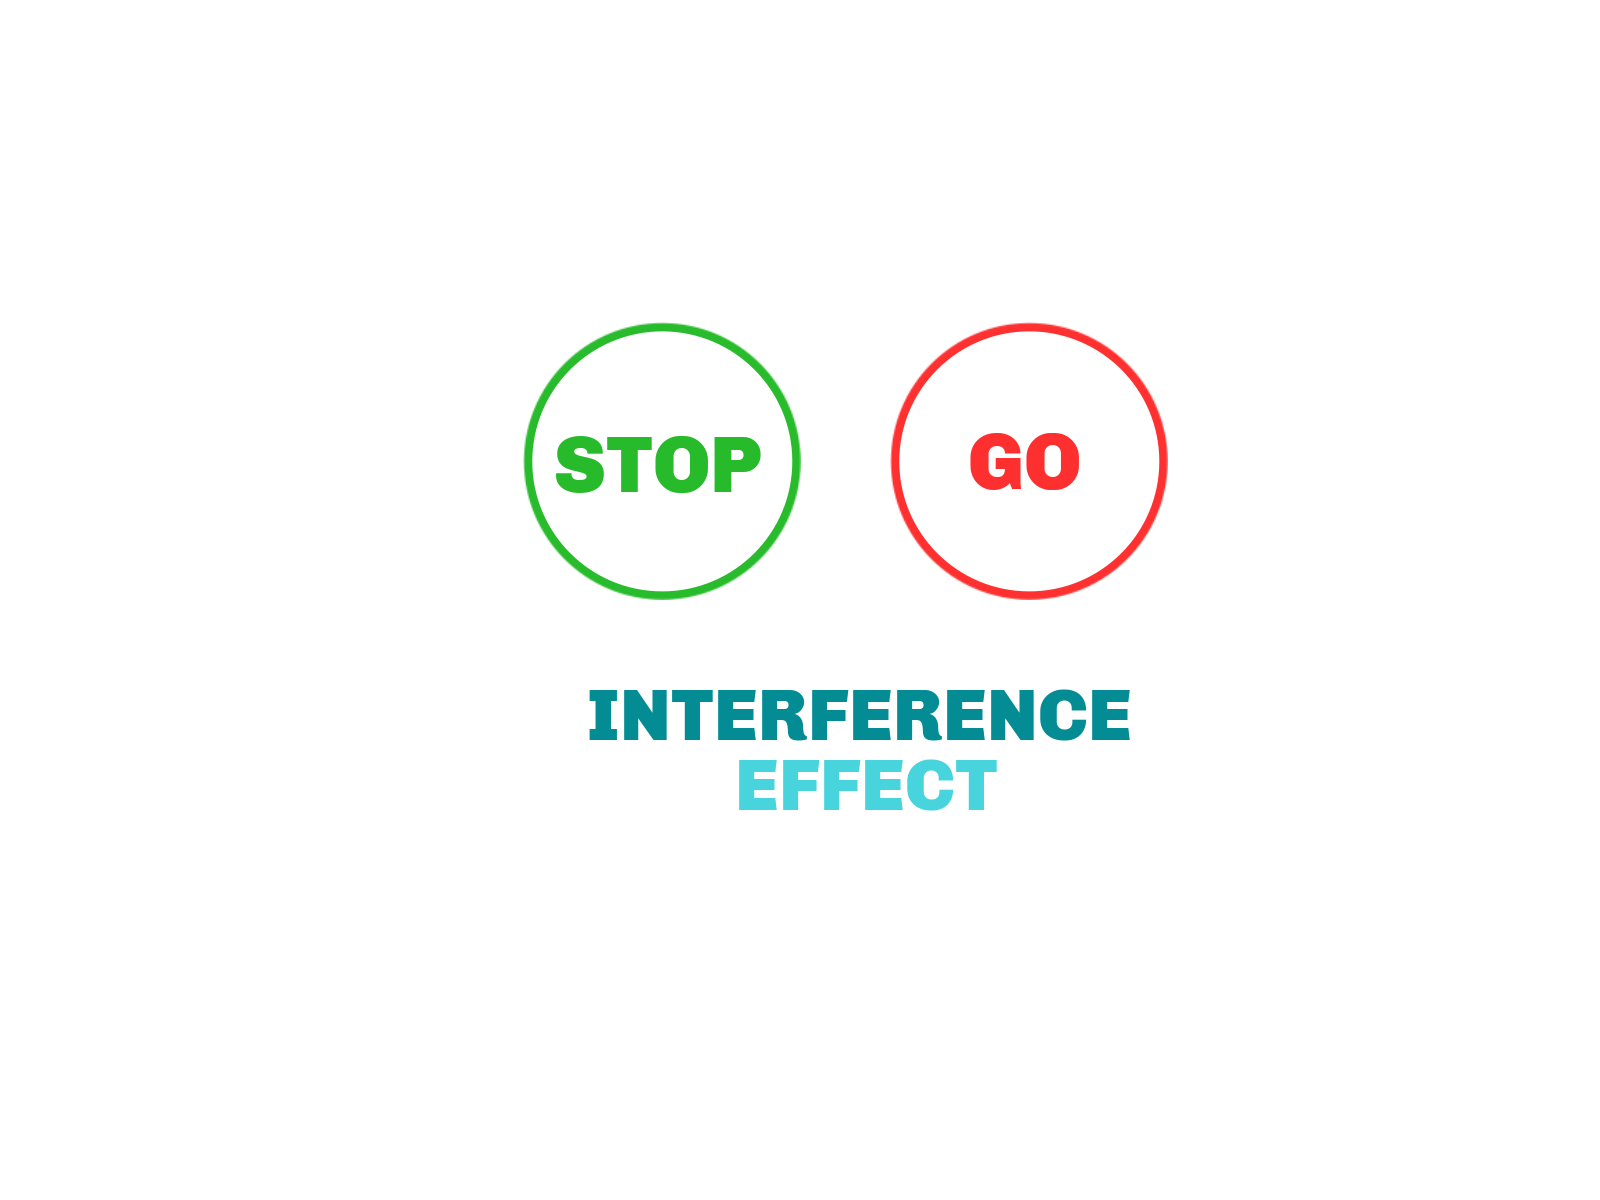 the interference effect